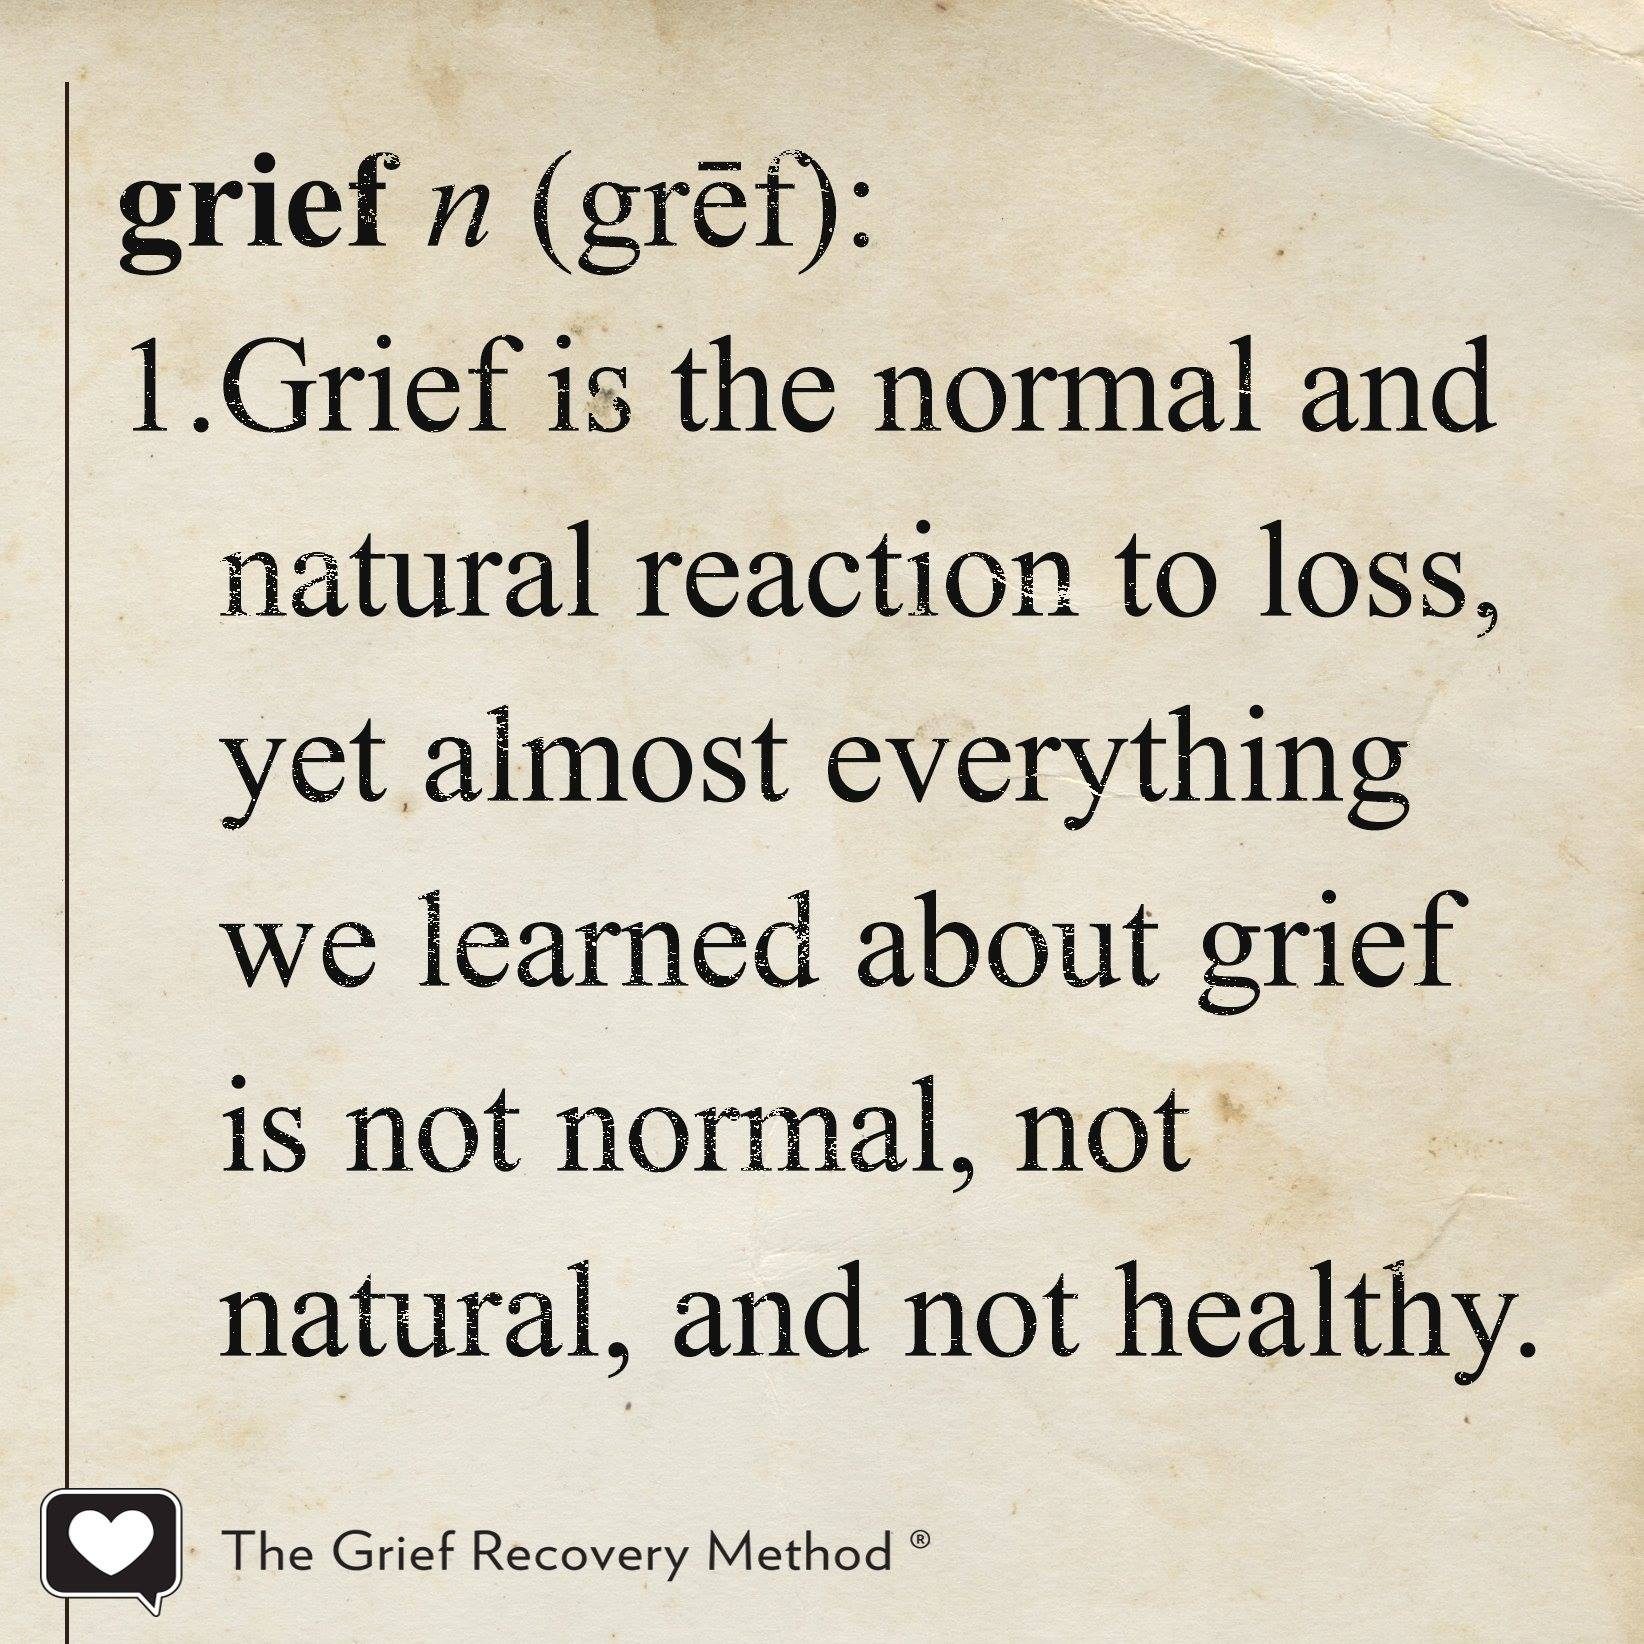 definition of grief normal and natural reaction to loss.jpg